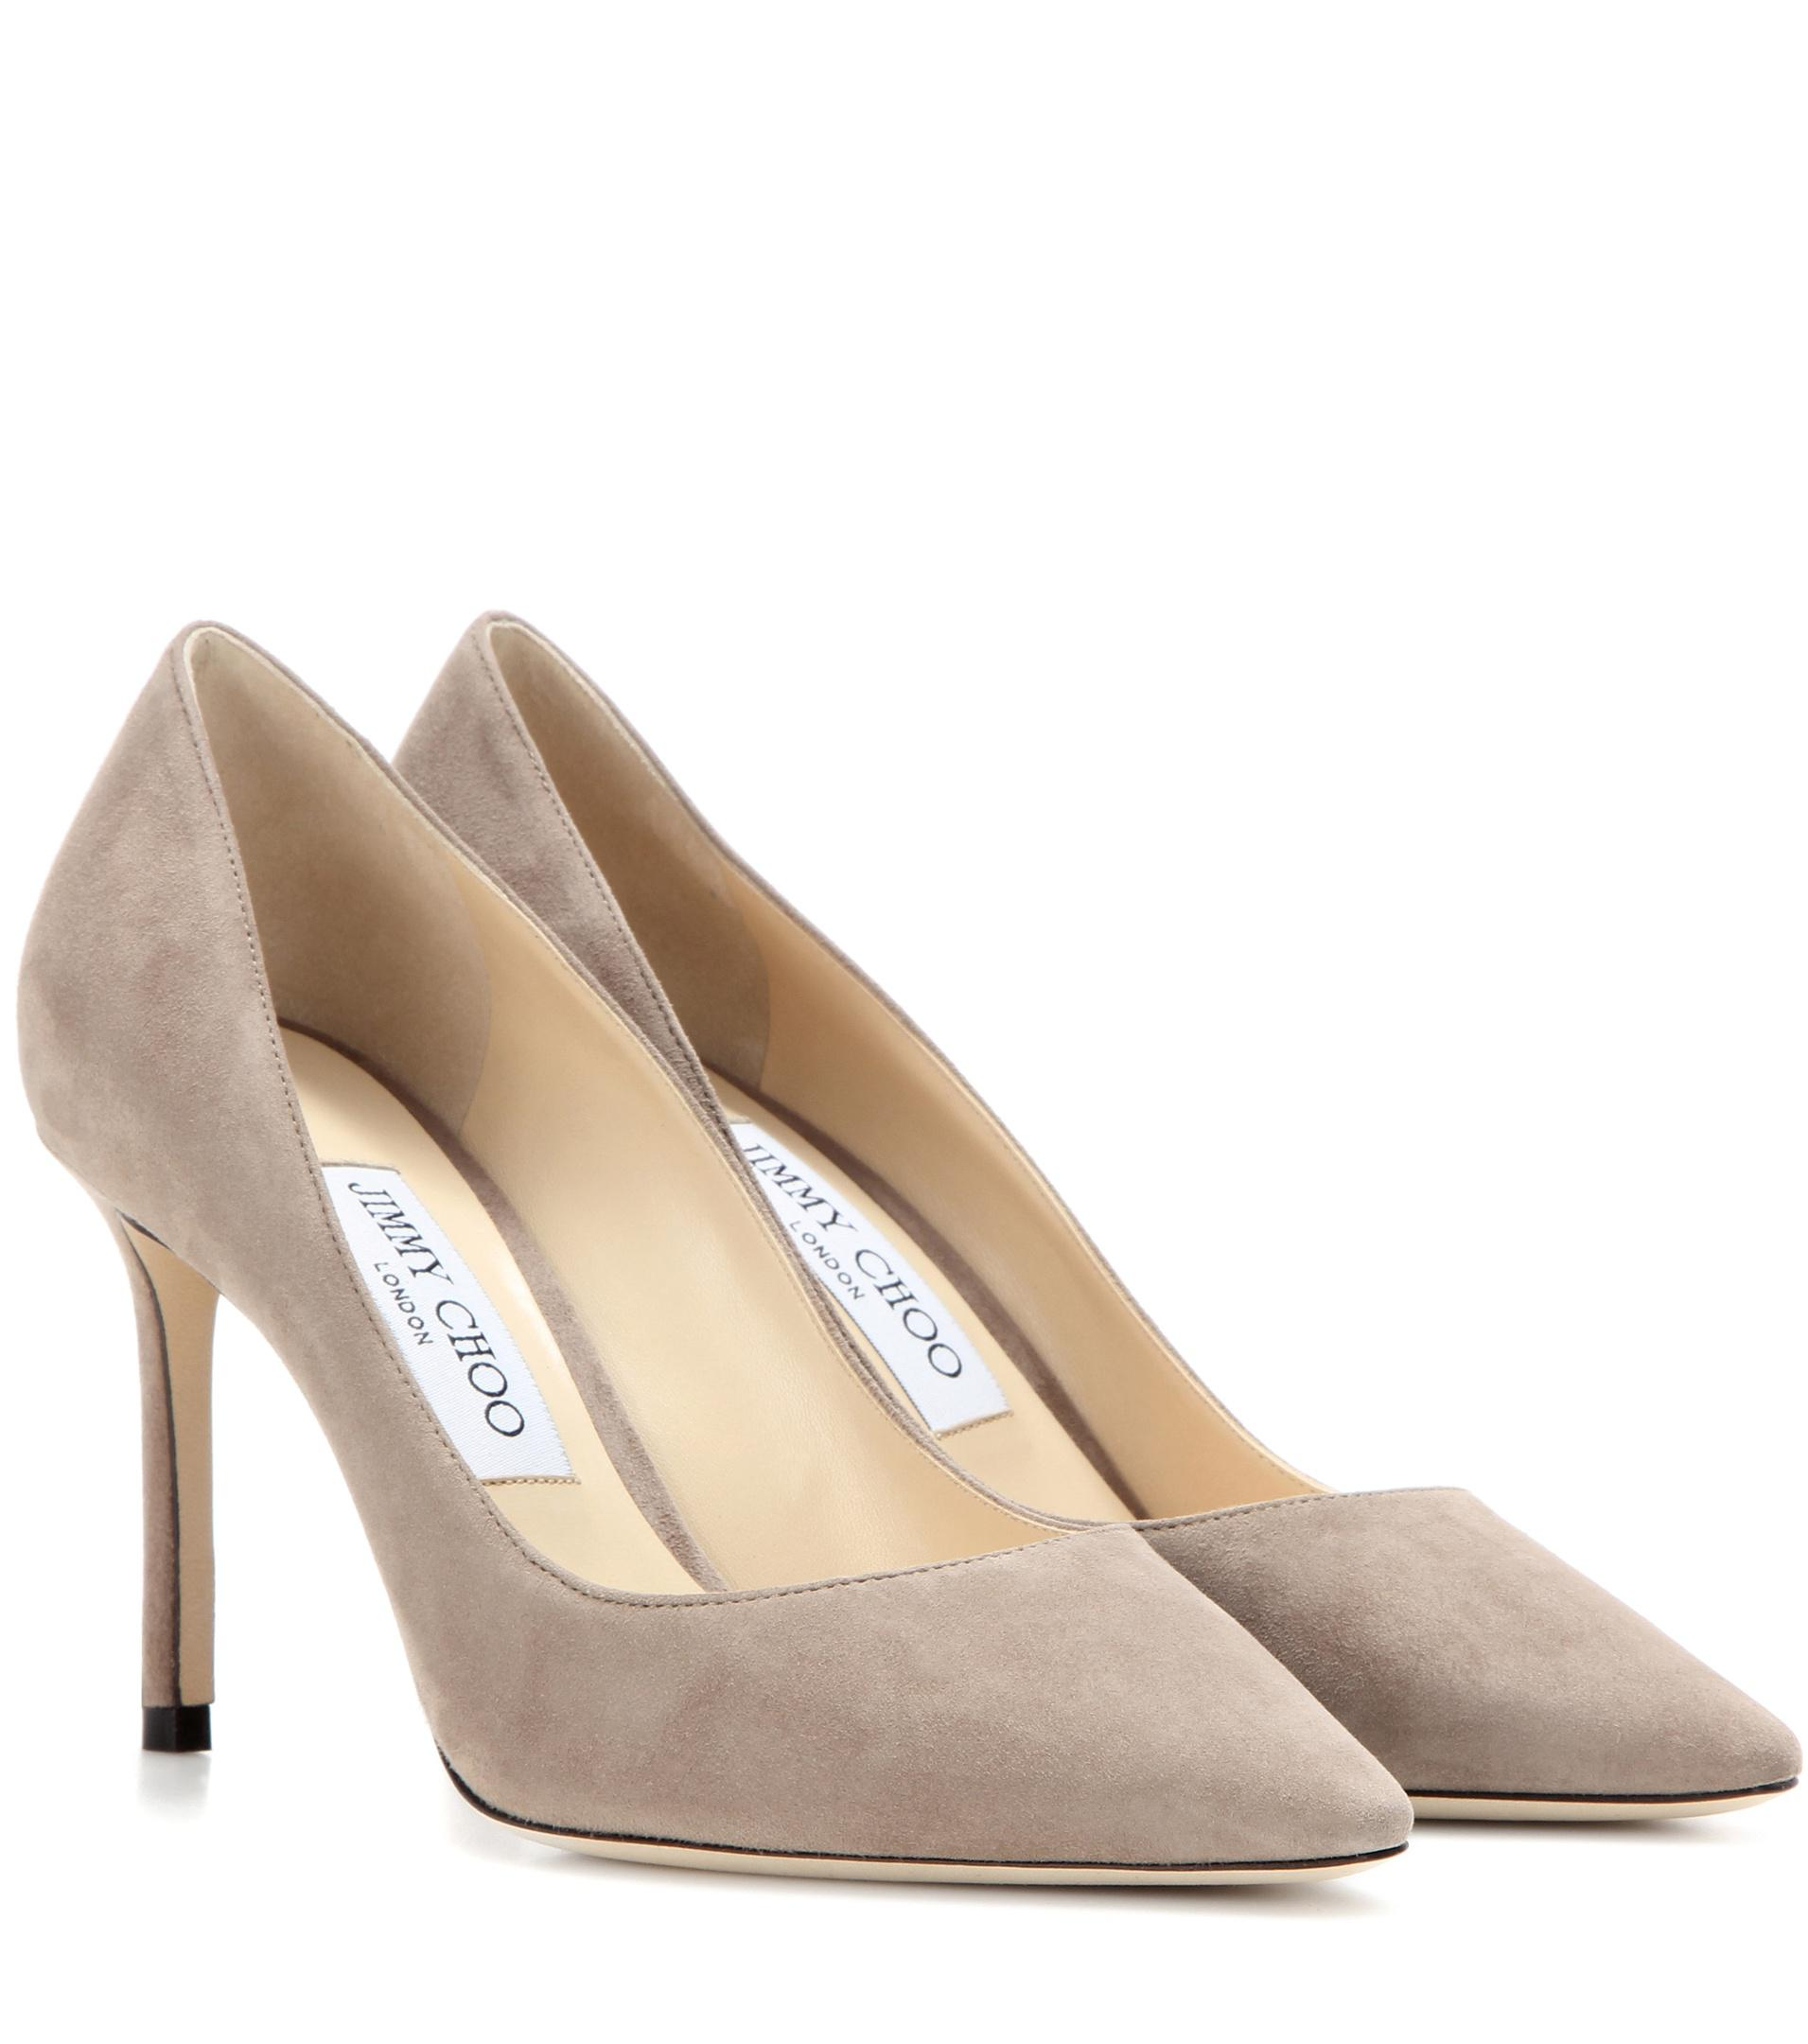 Soraya 65 pumps - Grey Jimmy Choo London pmr1Fu03b